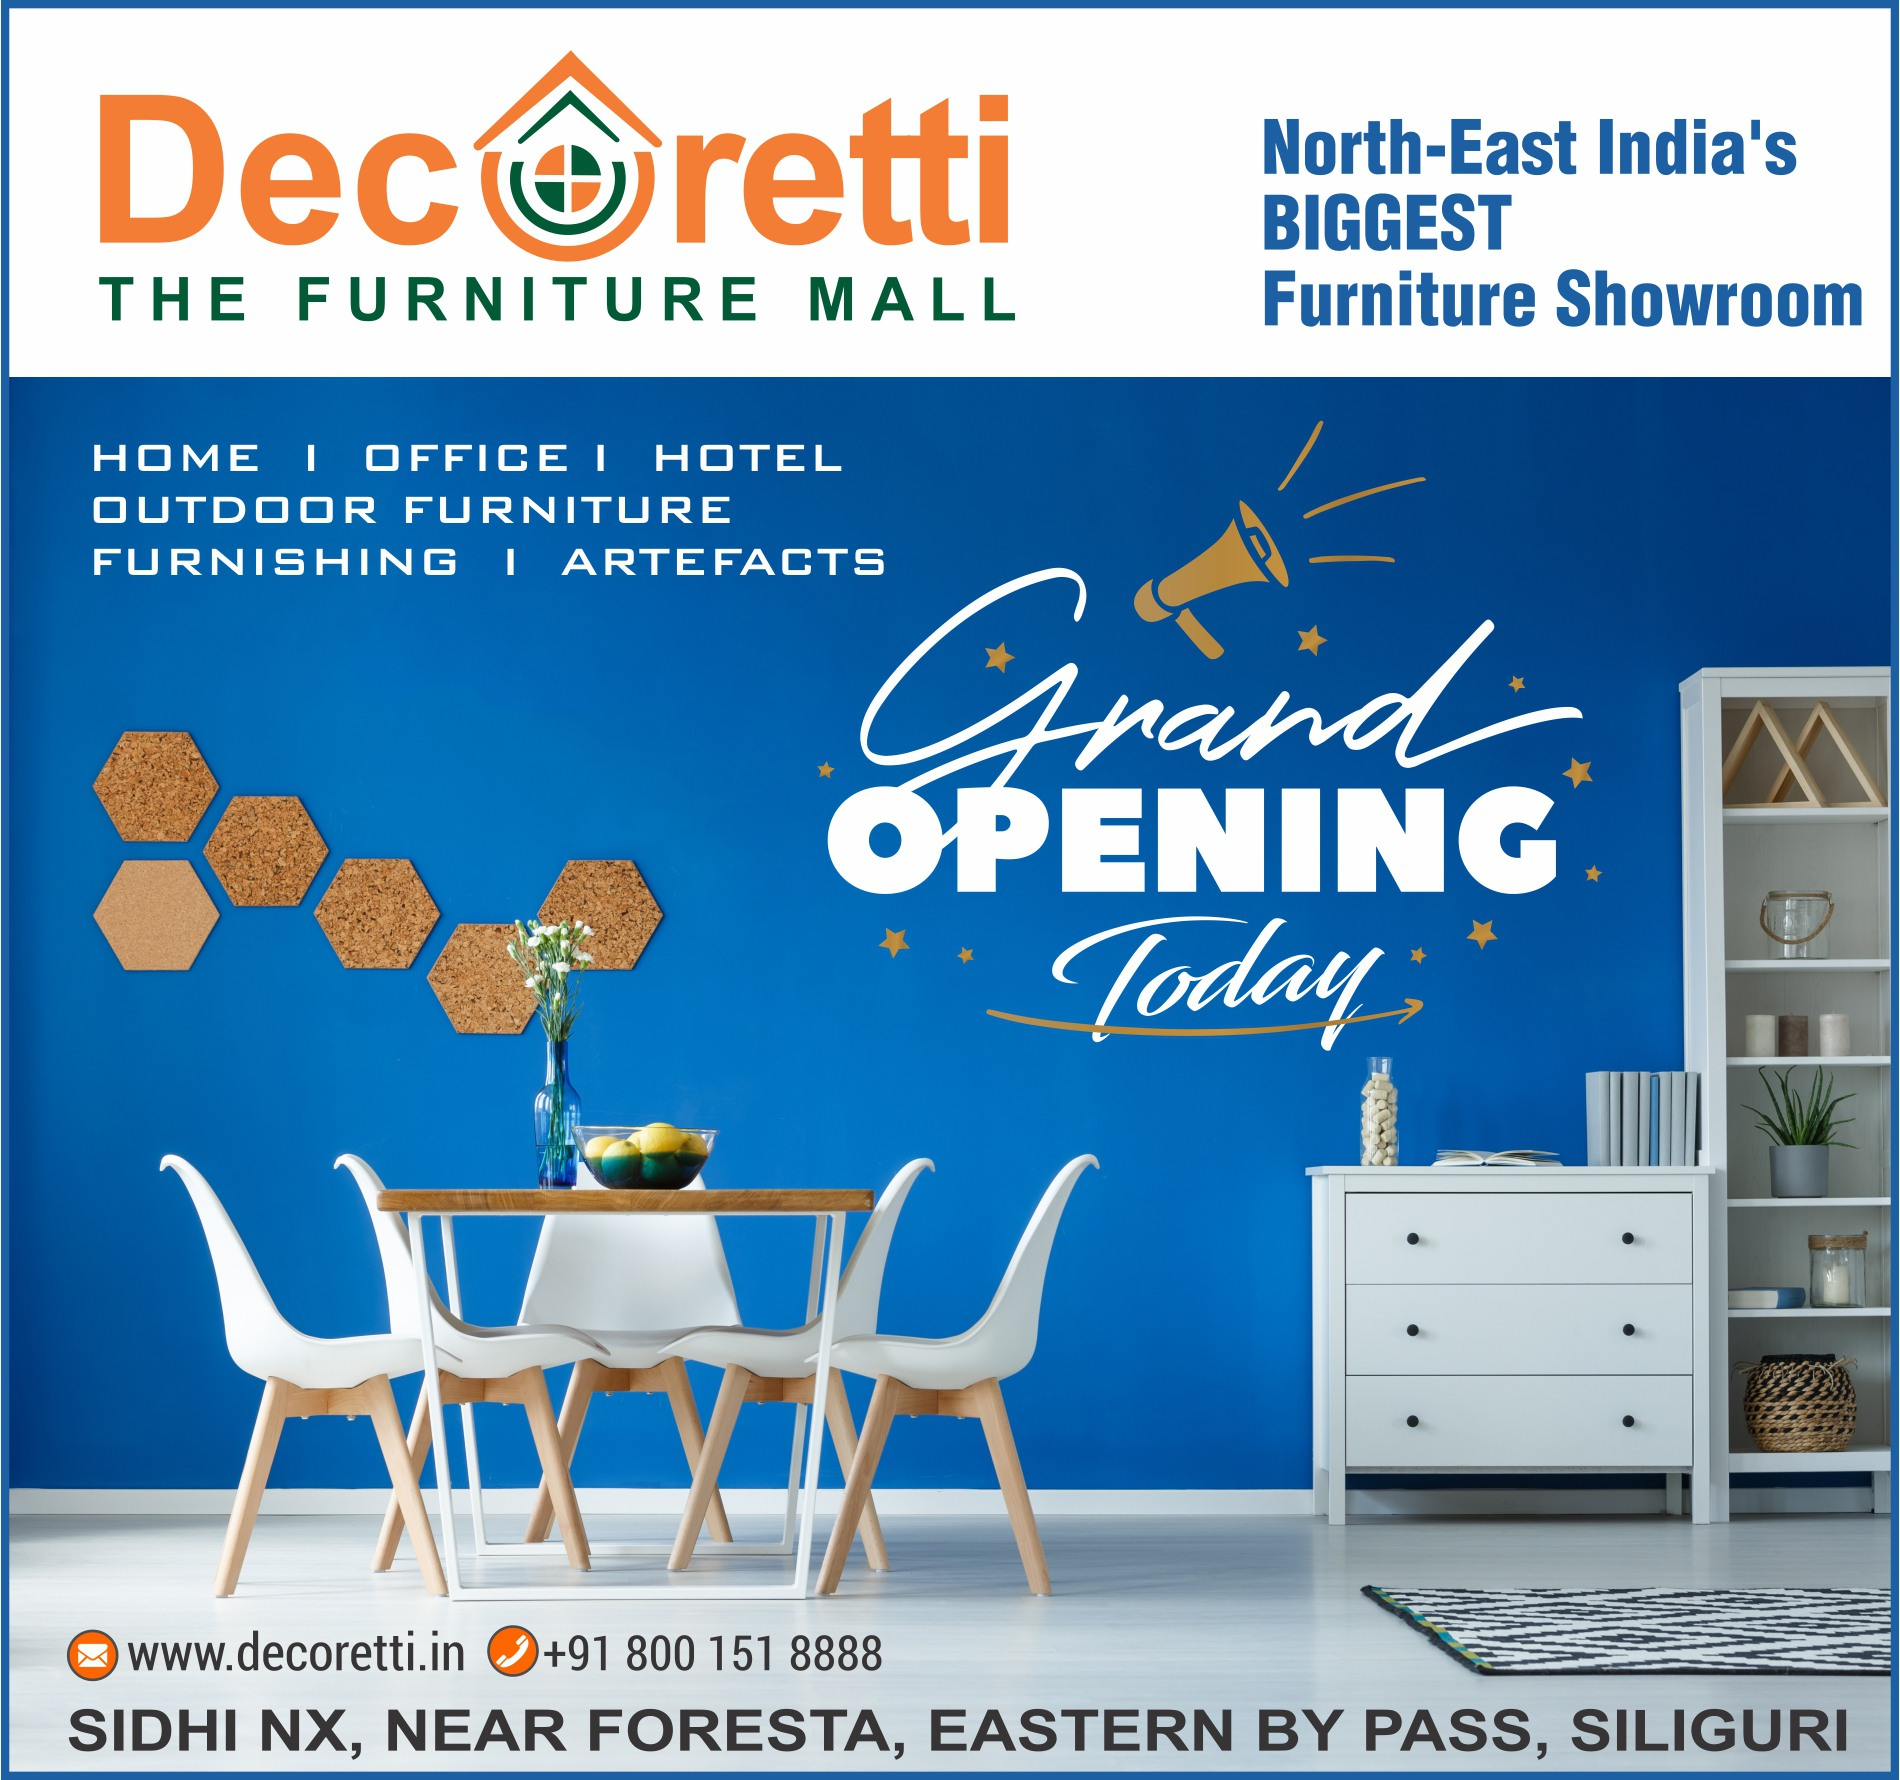 NEWS PAPER AD 160 X 150 GRAND OPENING TODAY - Social Media Creatives